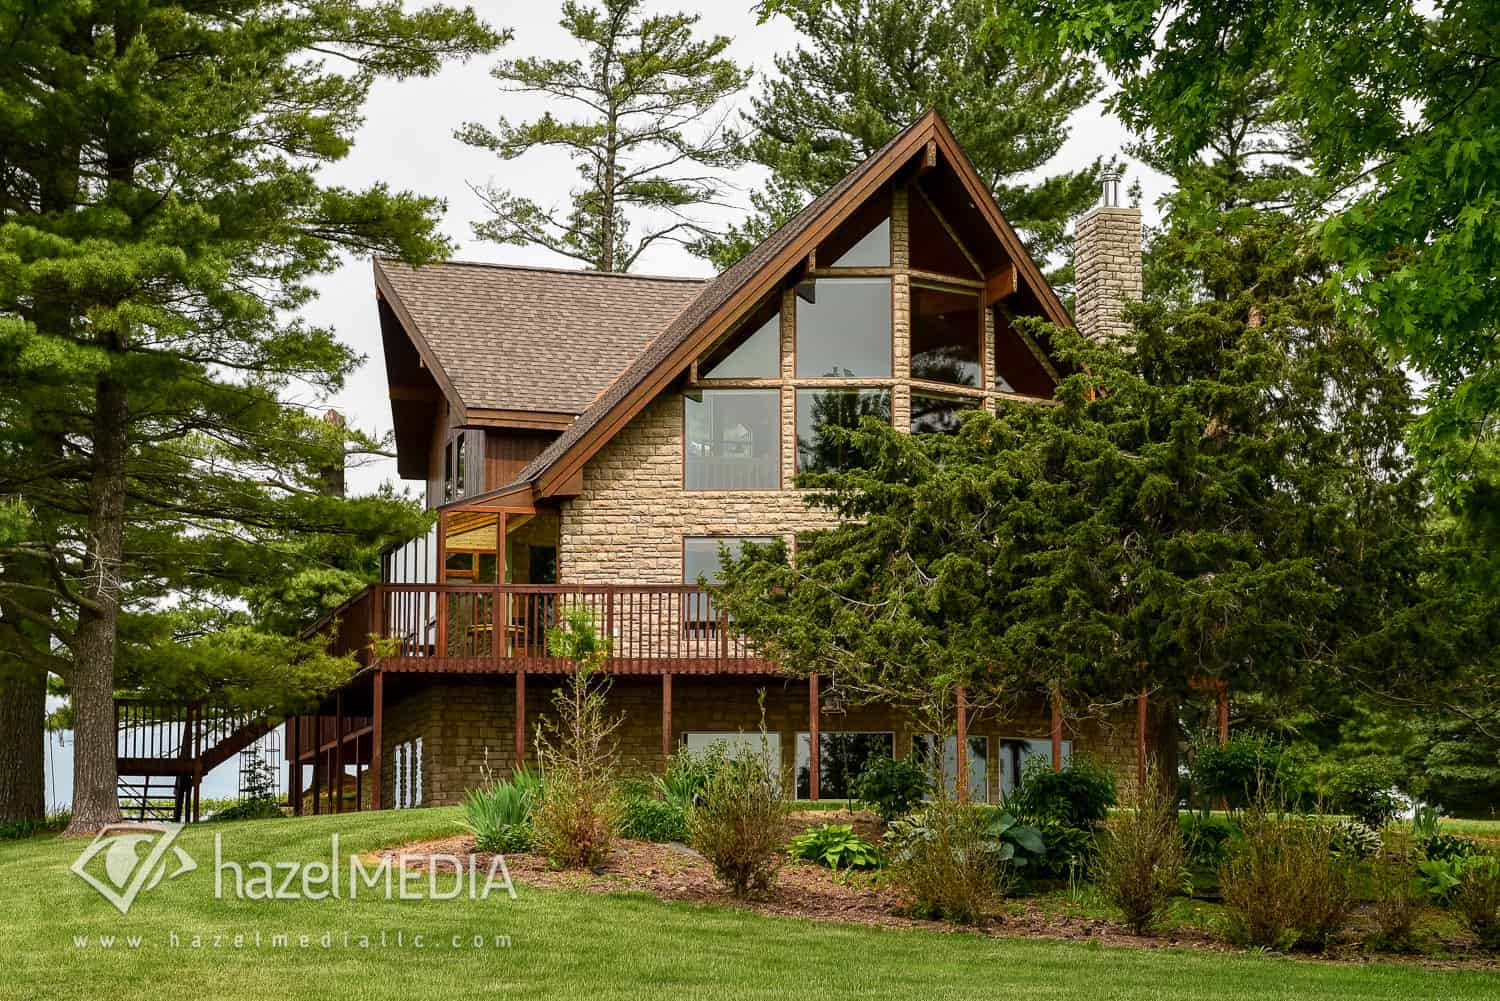 Residential_Exterior_Cabin